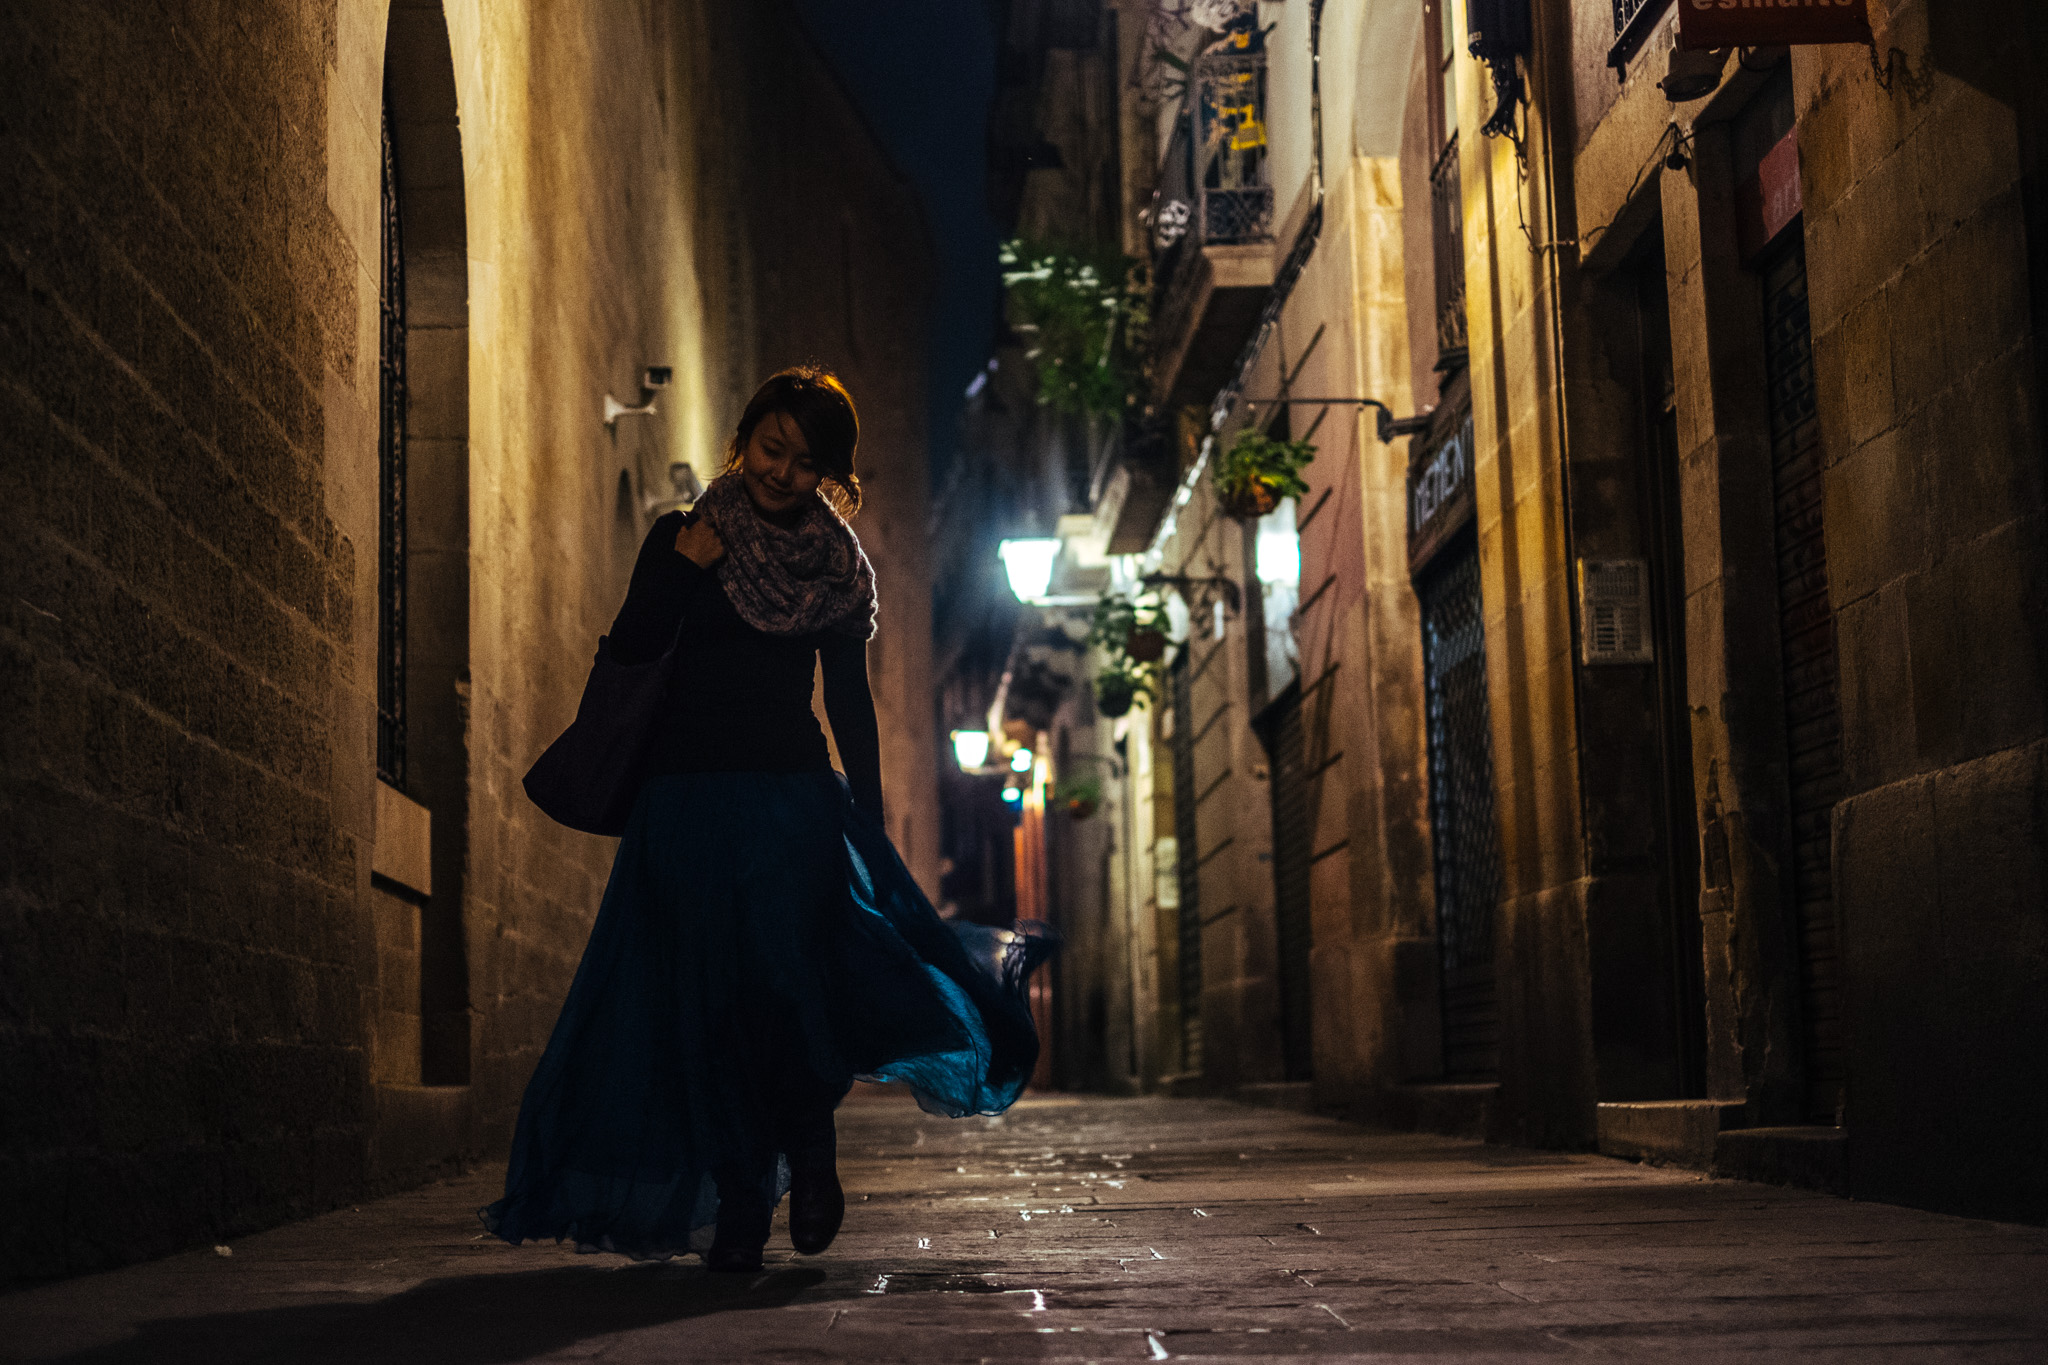 The alleyways of Barcelona has a definite charm when the night lamps come on…